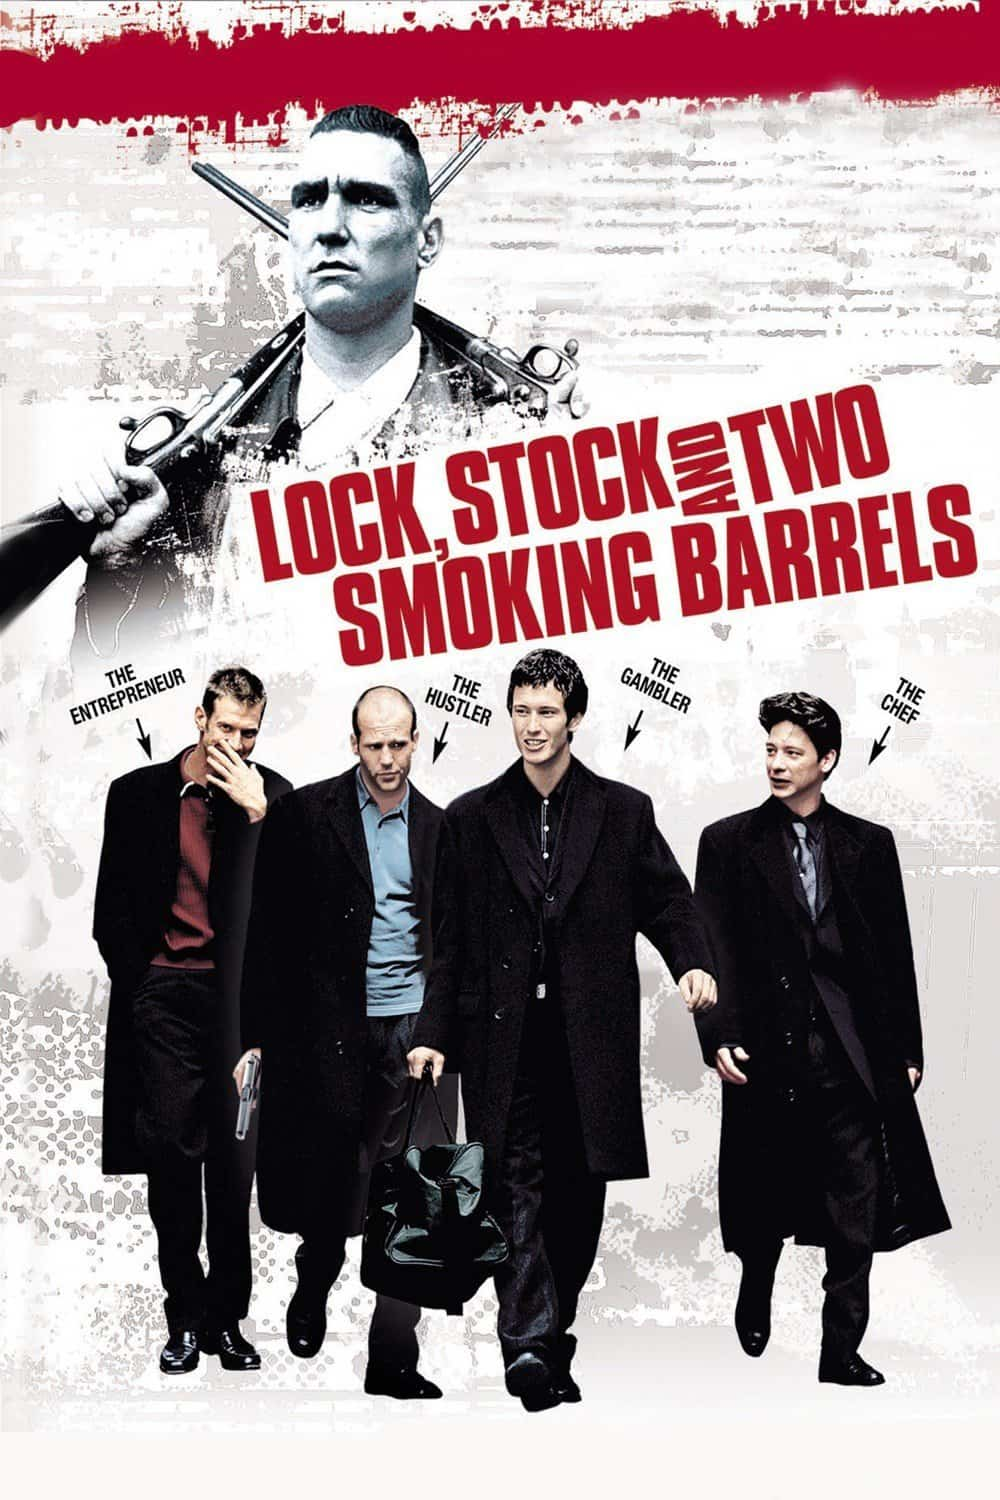 Lock, Stock and Two Smoking Barrels, 1998